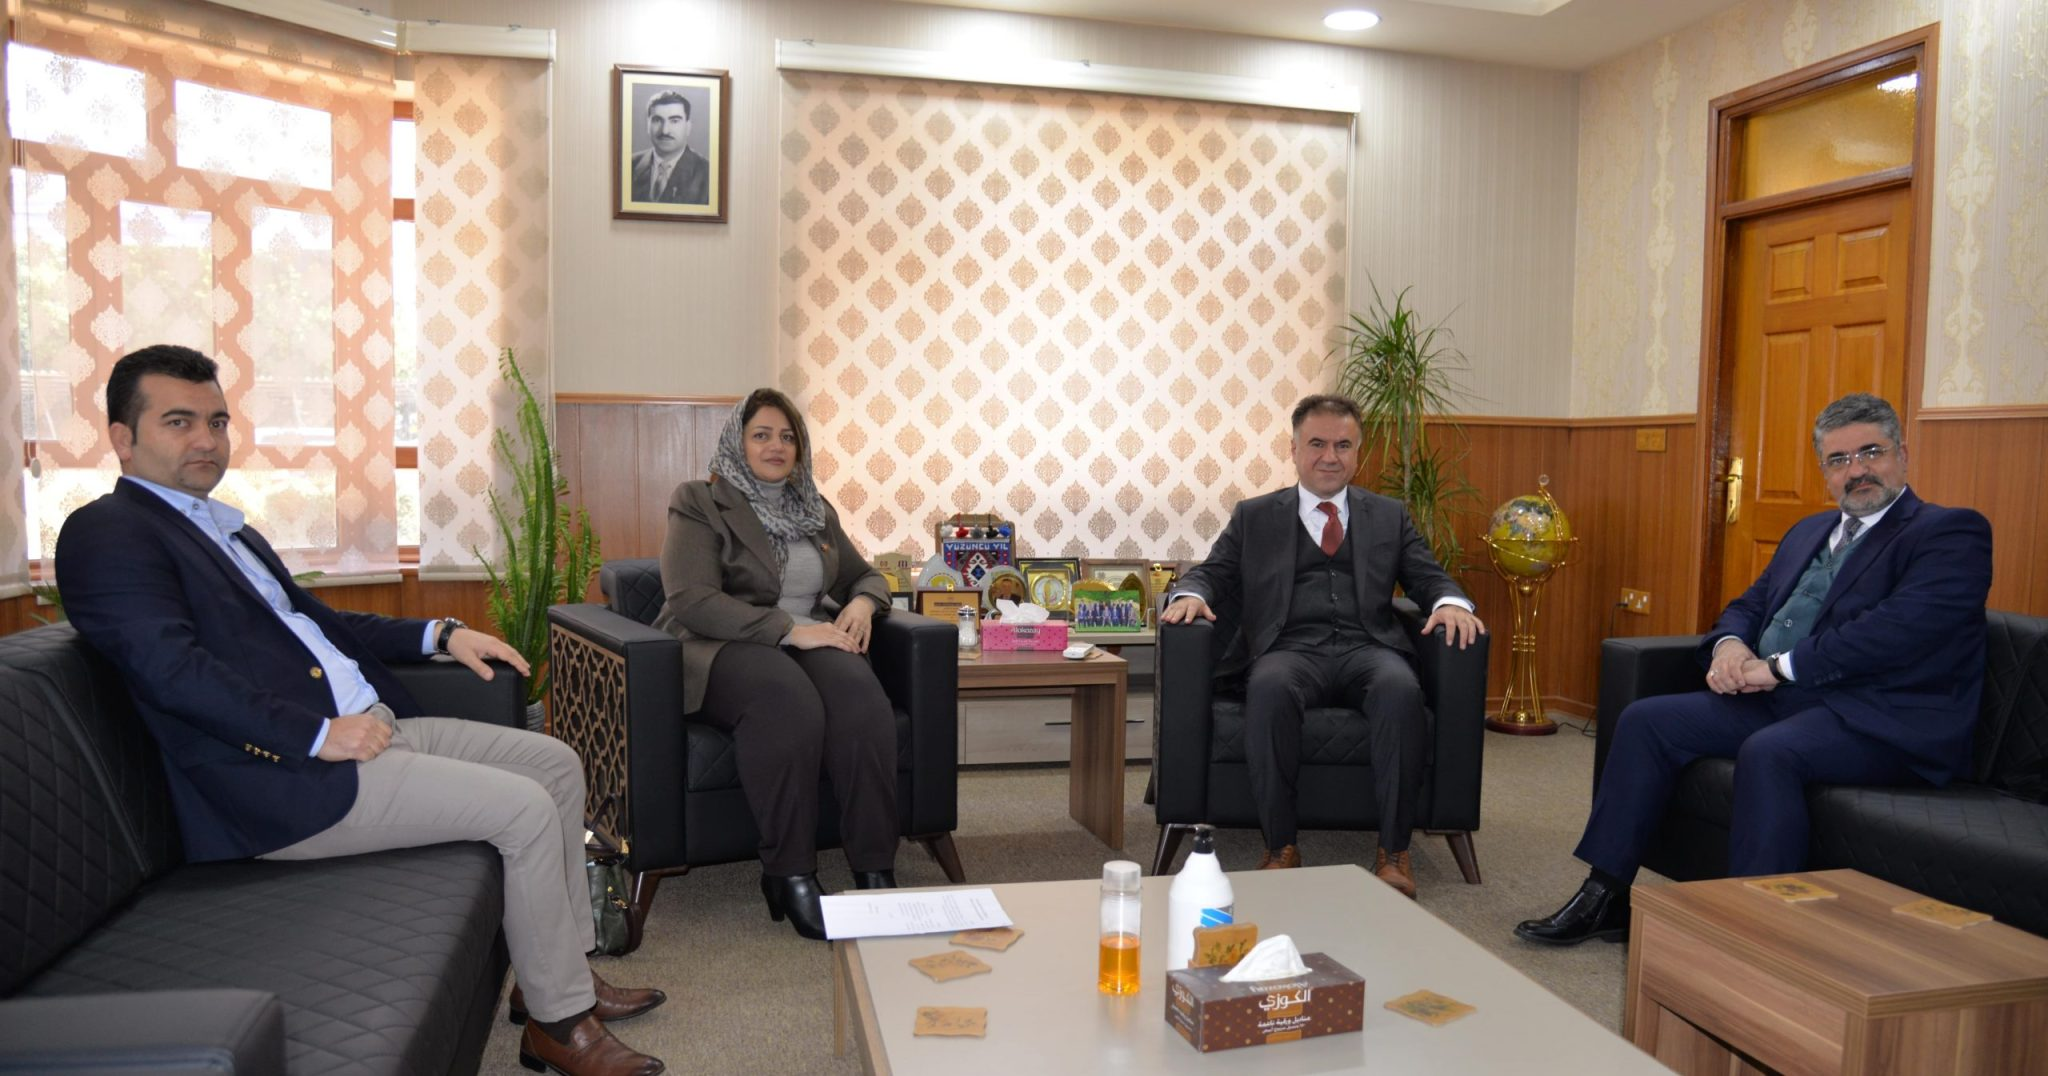 The Rector of the University Received the Higher Education and Education Committee of the Parliament